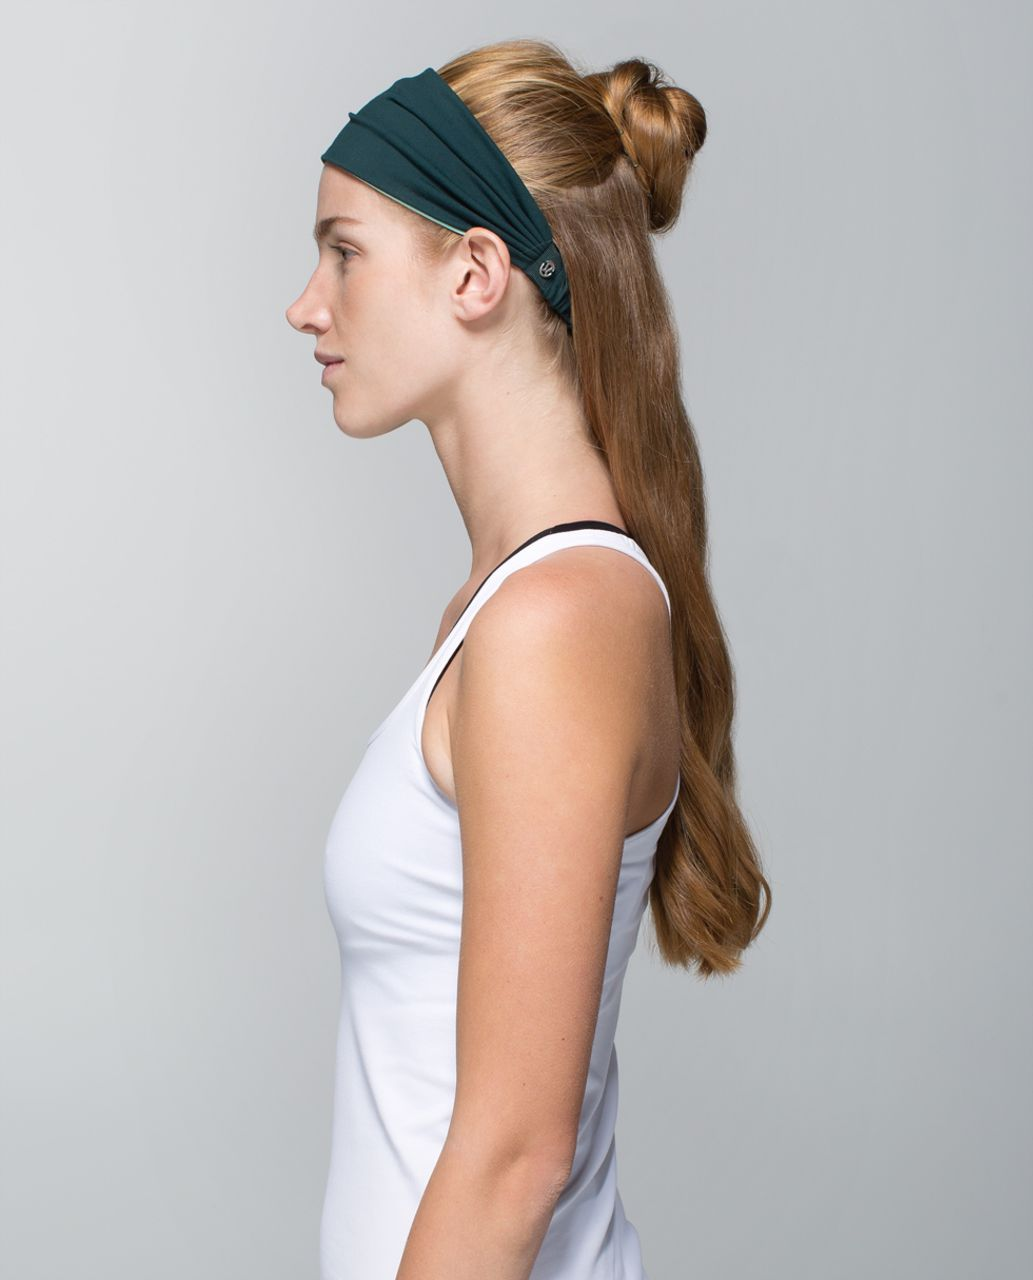 Lululemon Bang Buster Headband *Reversible - Fuel Green / Toothpaste